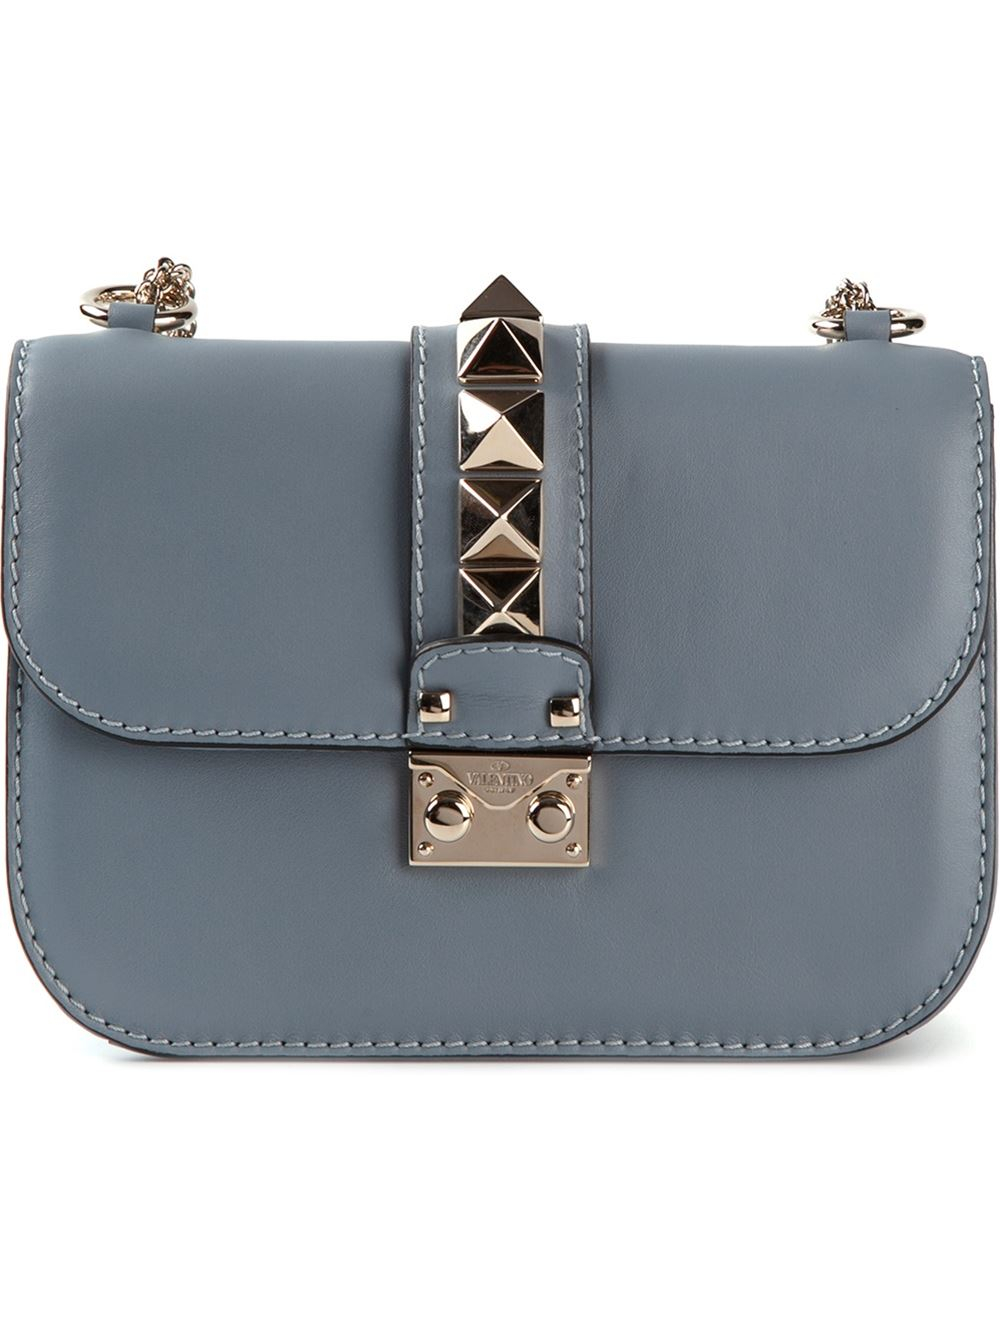 7efeb2994c Valentino Glamrock Shoulder Bag in Gray - Lyst